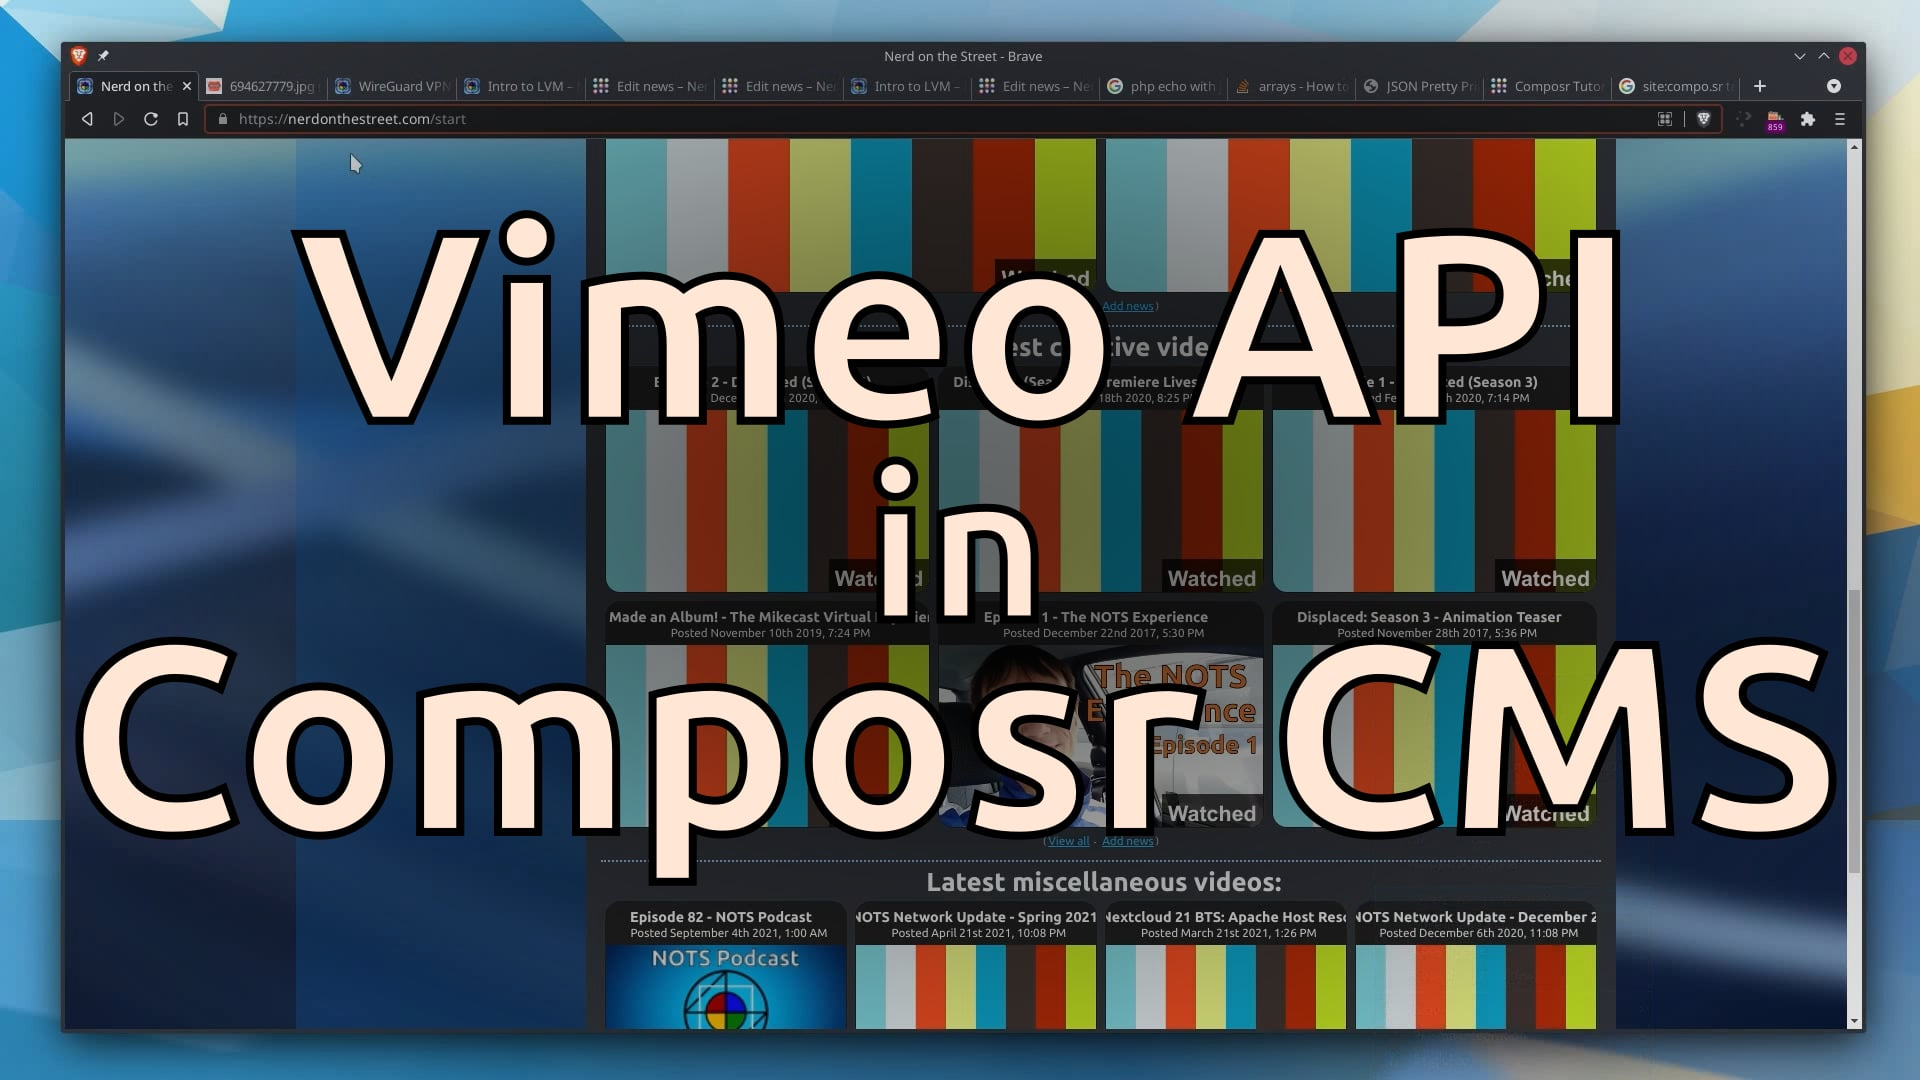 Implementing the Vimeo API in Composr CMS